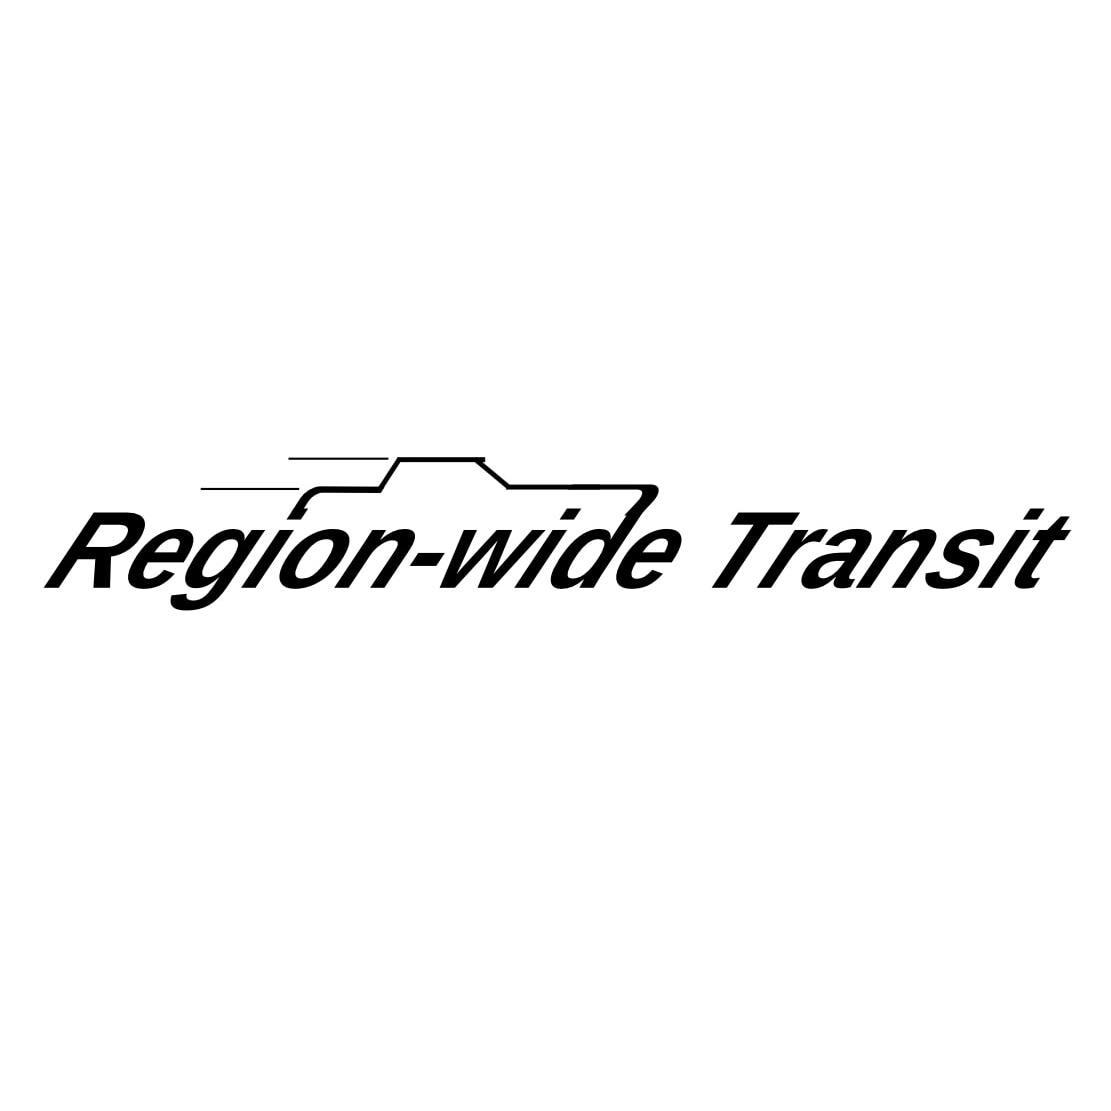 Region-wide Transit - Columbia, TN - Courier & Delivery Services